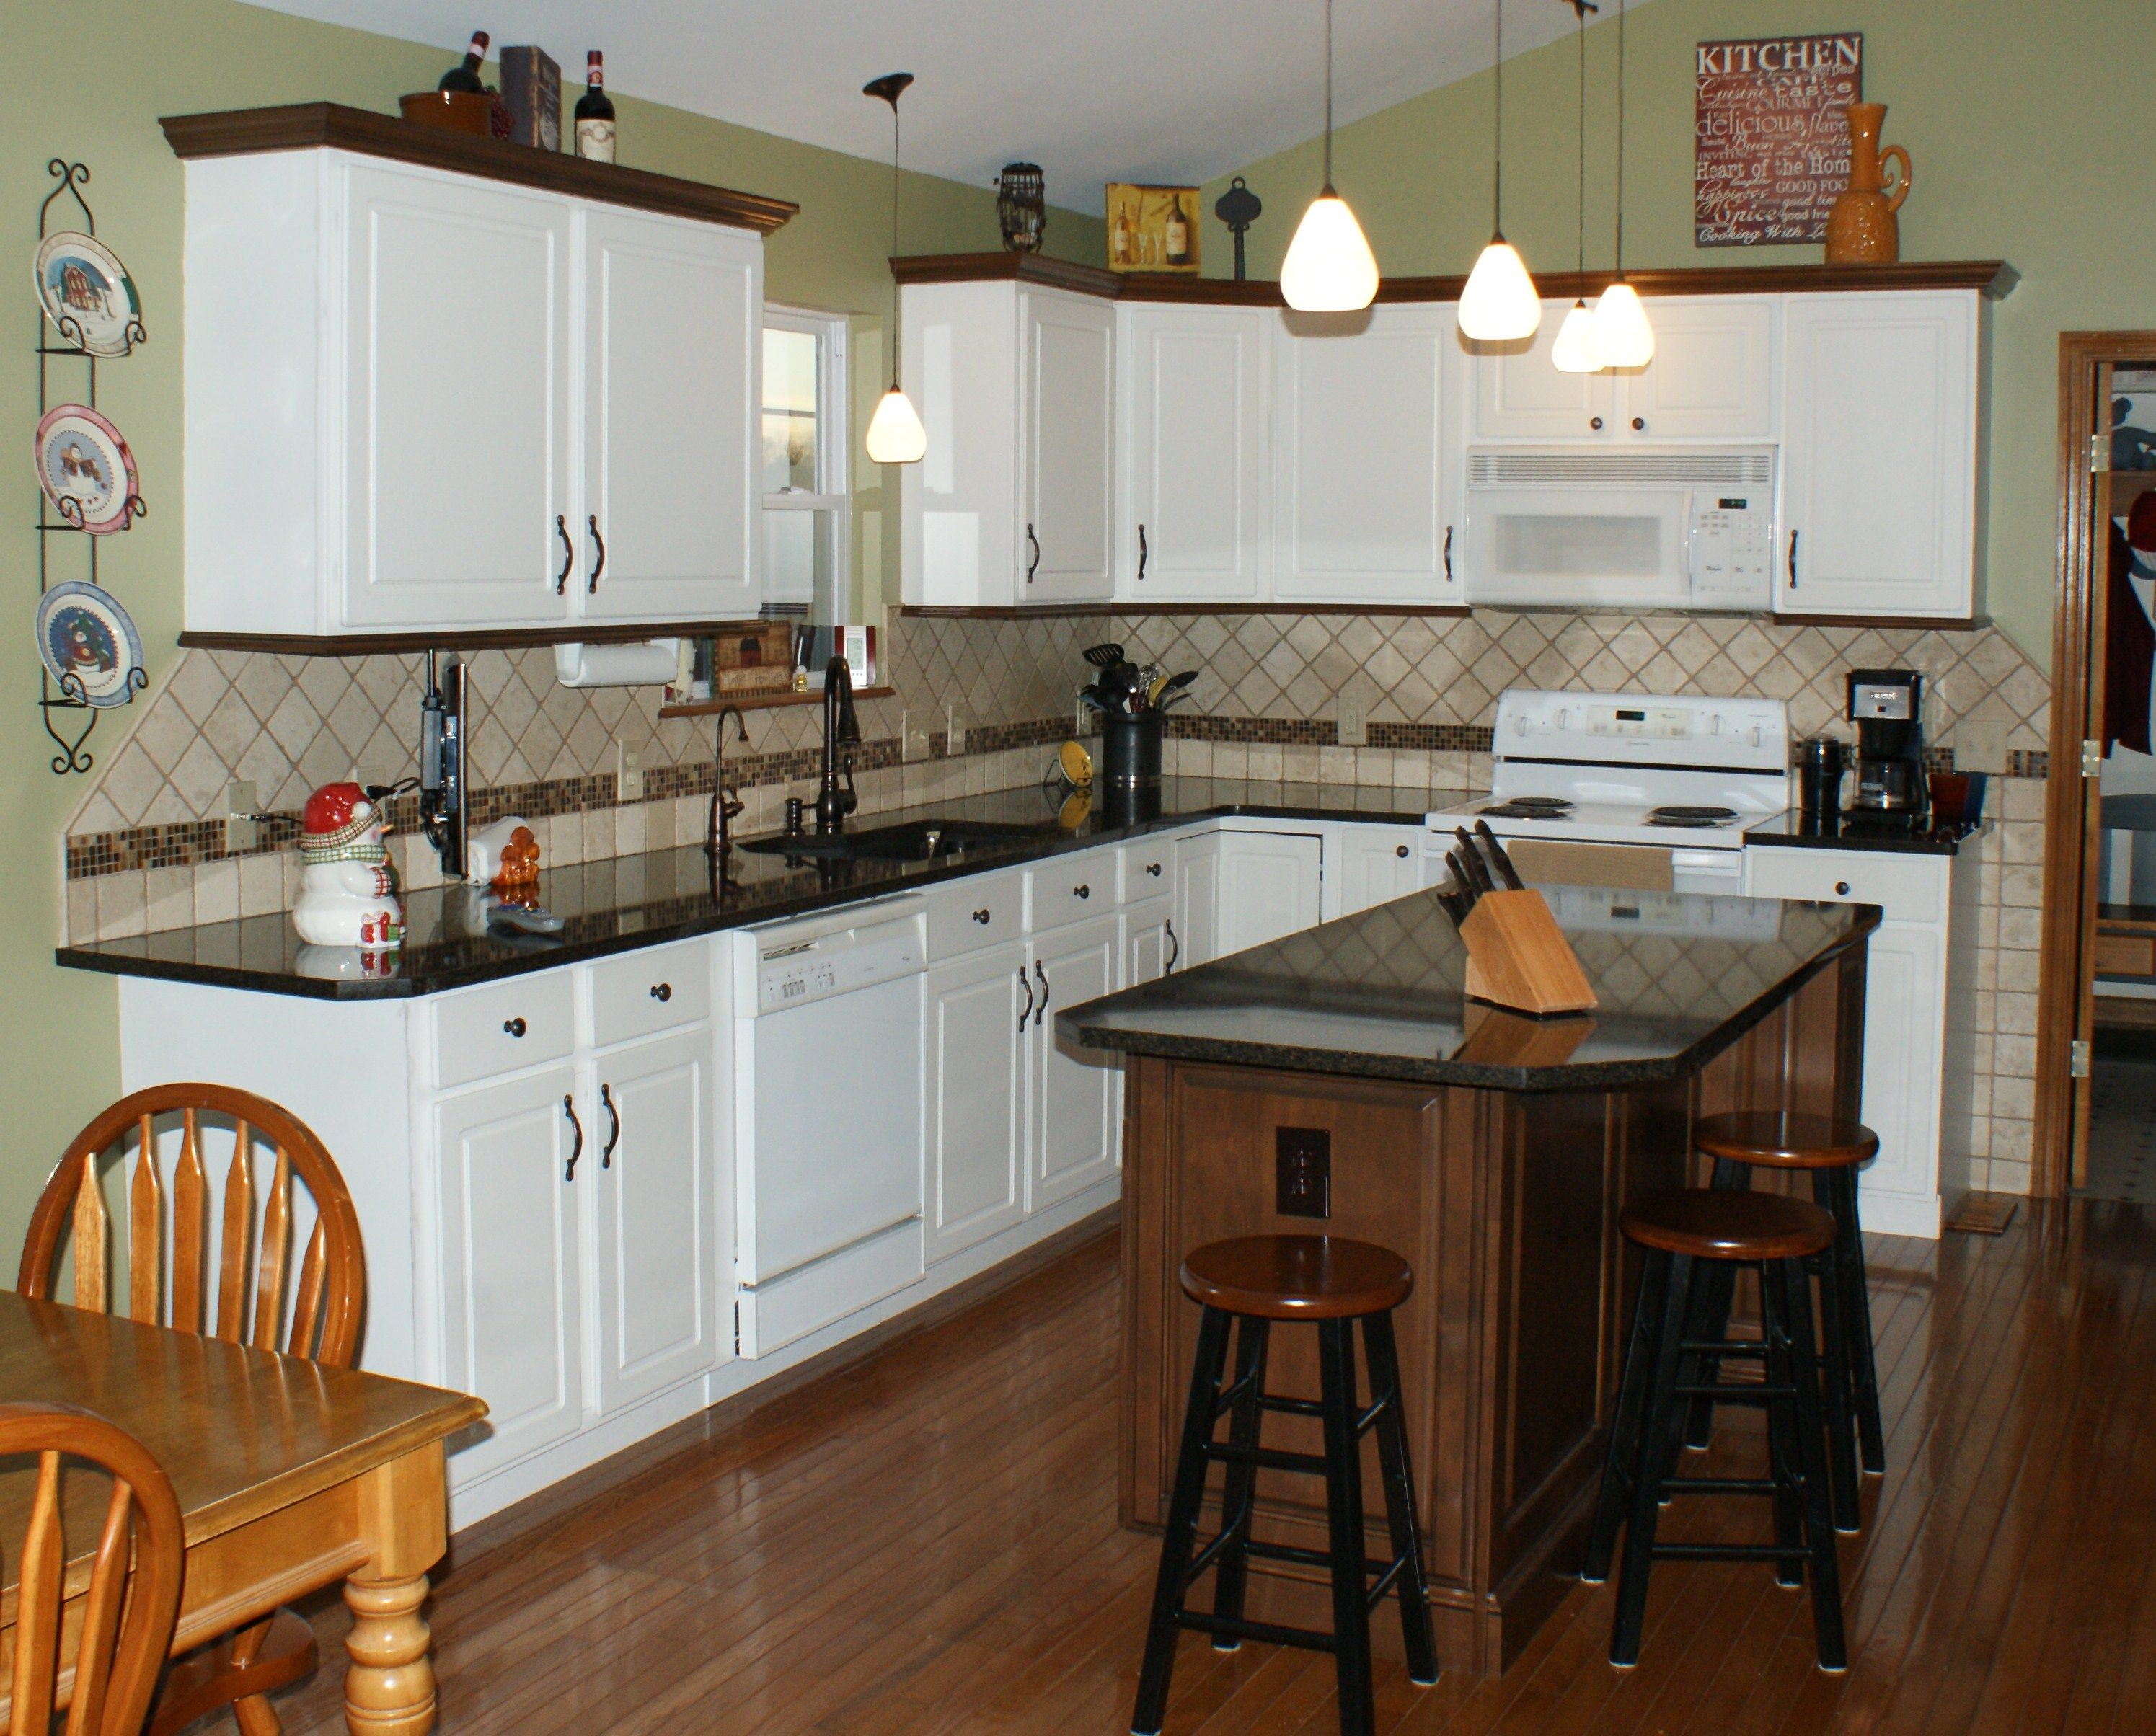 new brookhaven island nut brown on maple with matching molding added to existing white thermofoil cabinetry